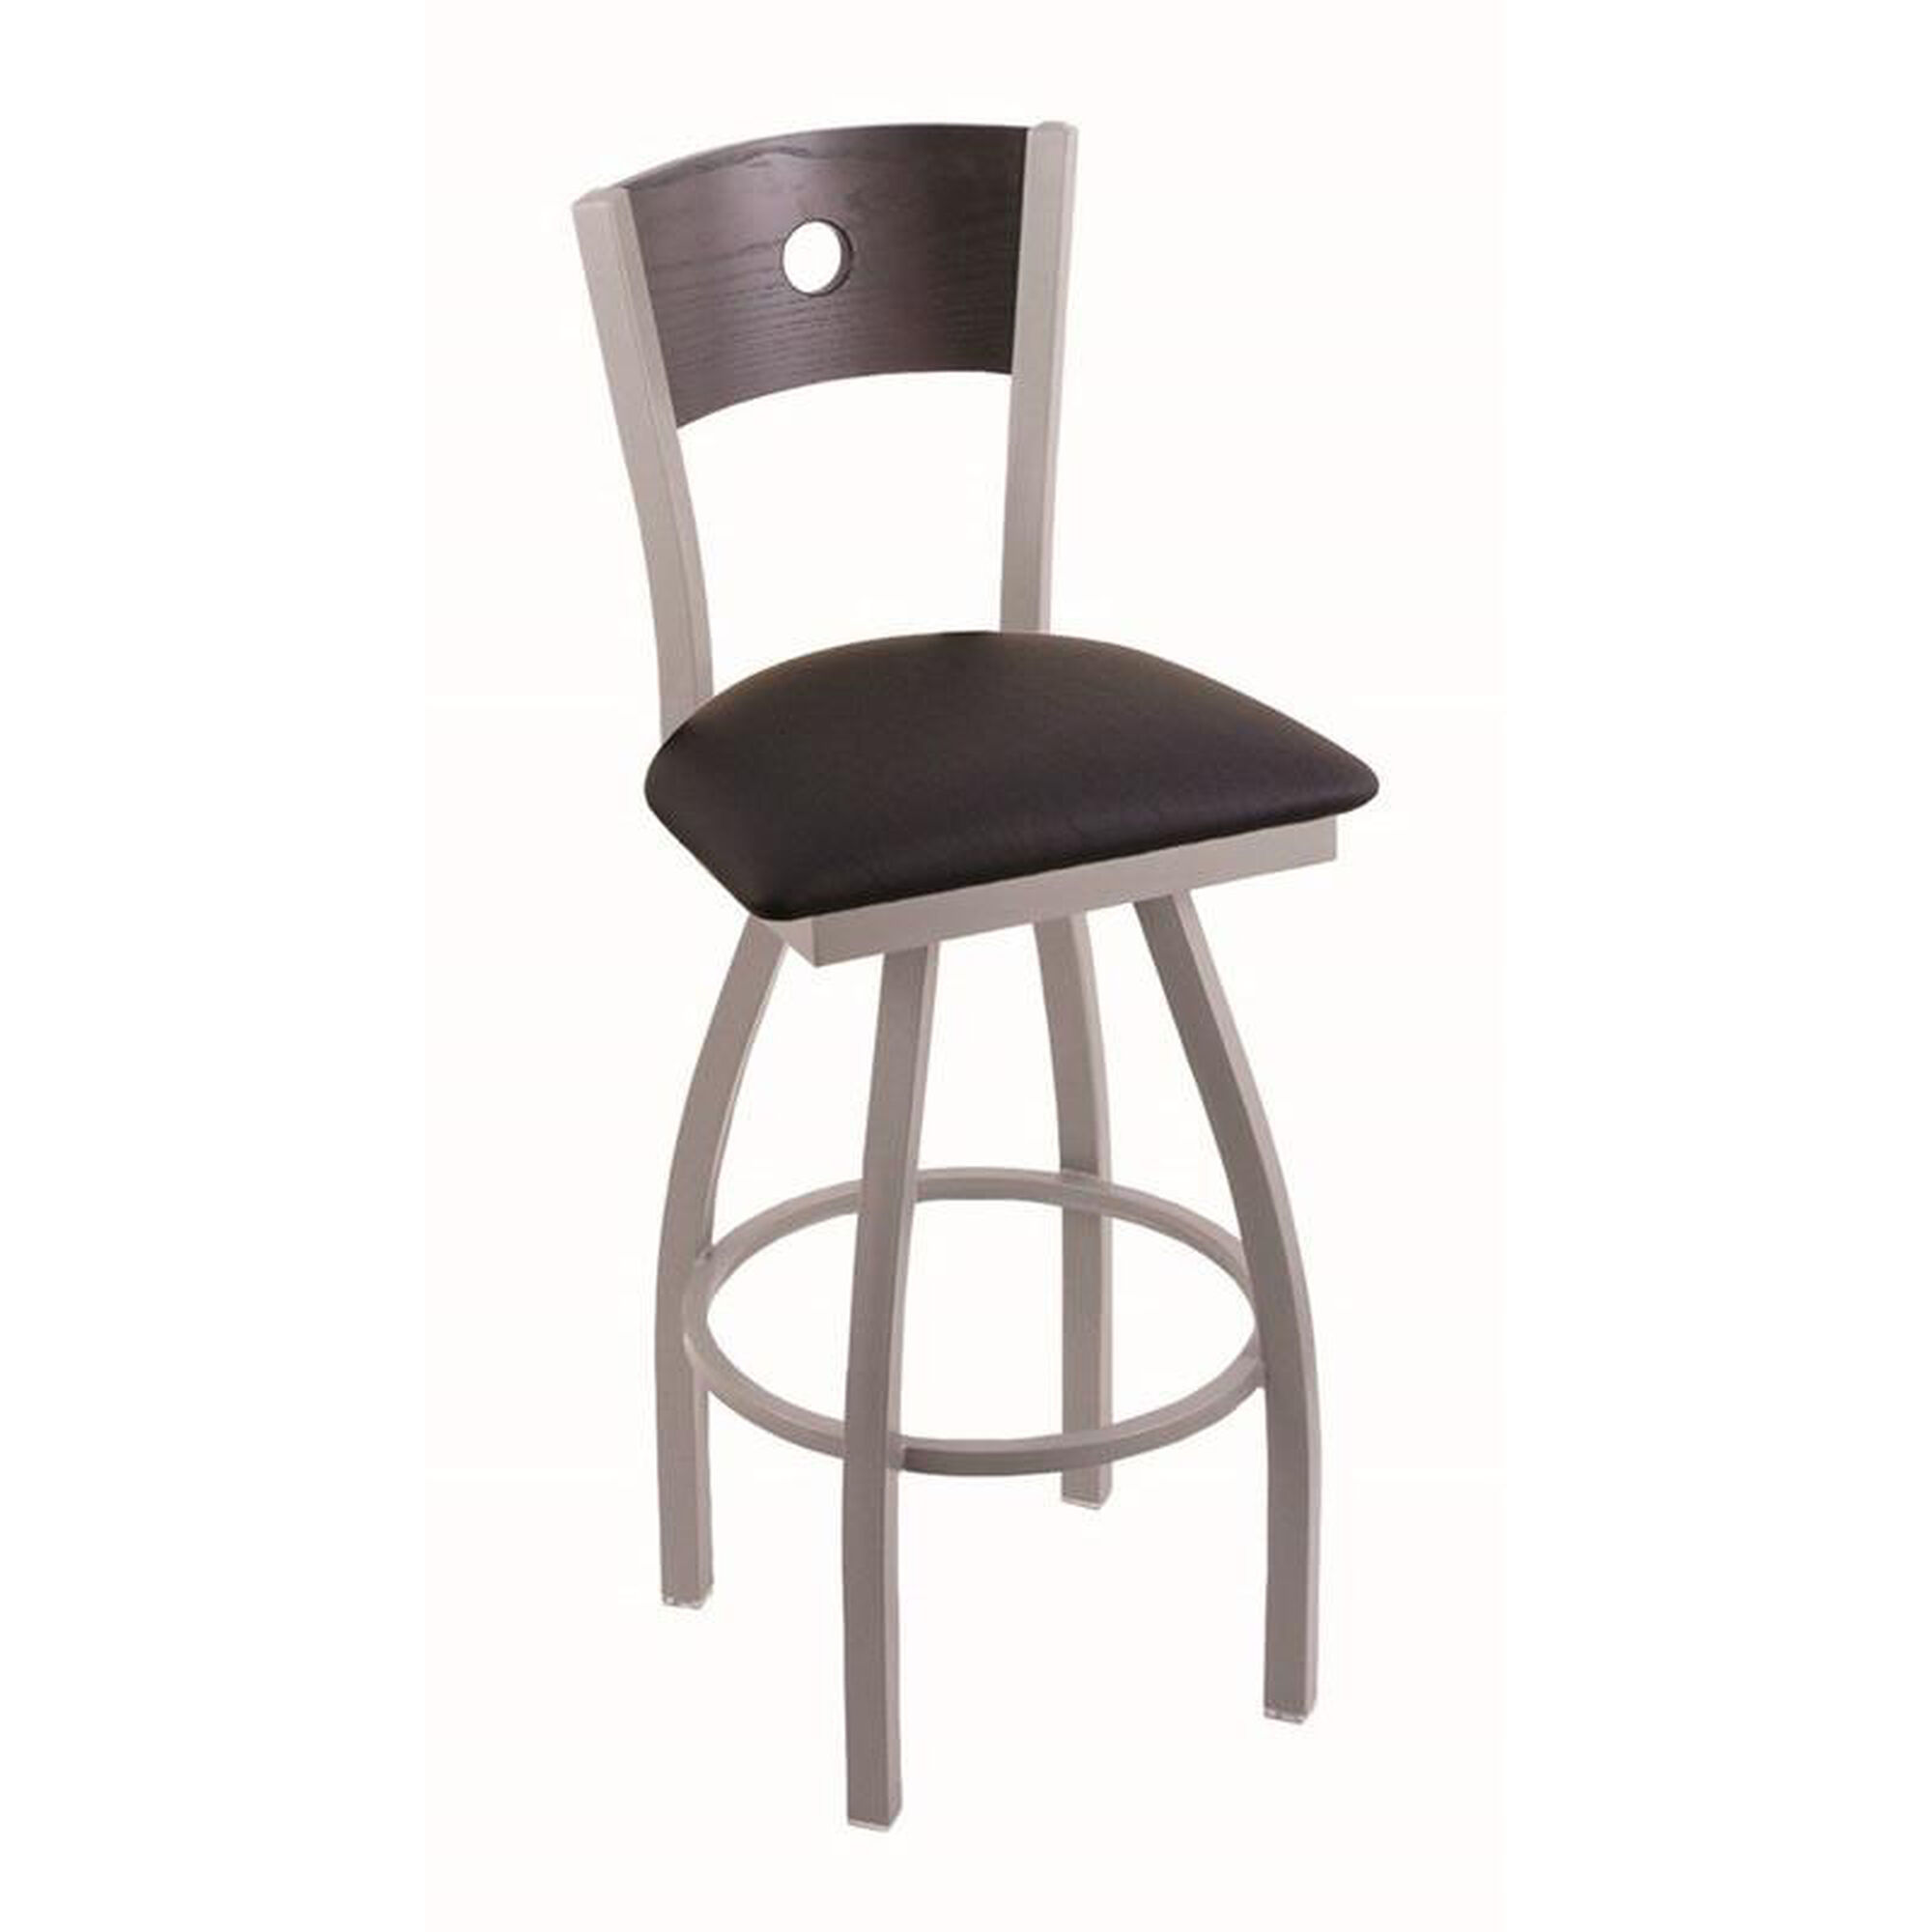 The Holland Bar Stool Co 83030ANDCOAKBBLKVINYL HOB : THEHOLLANDBARSTOOLCO83030ANDCOAKBBLKVINYL HOBMAINIMAGE from www.restaurantfurniture4less.com size 2000 x 2000 jpeg 108kB